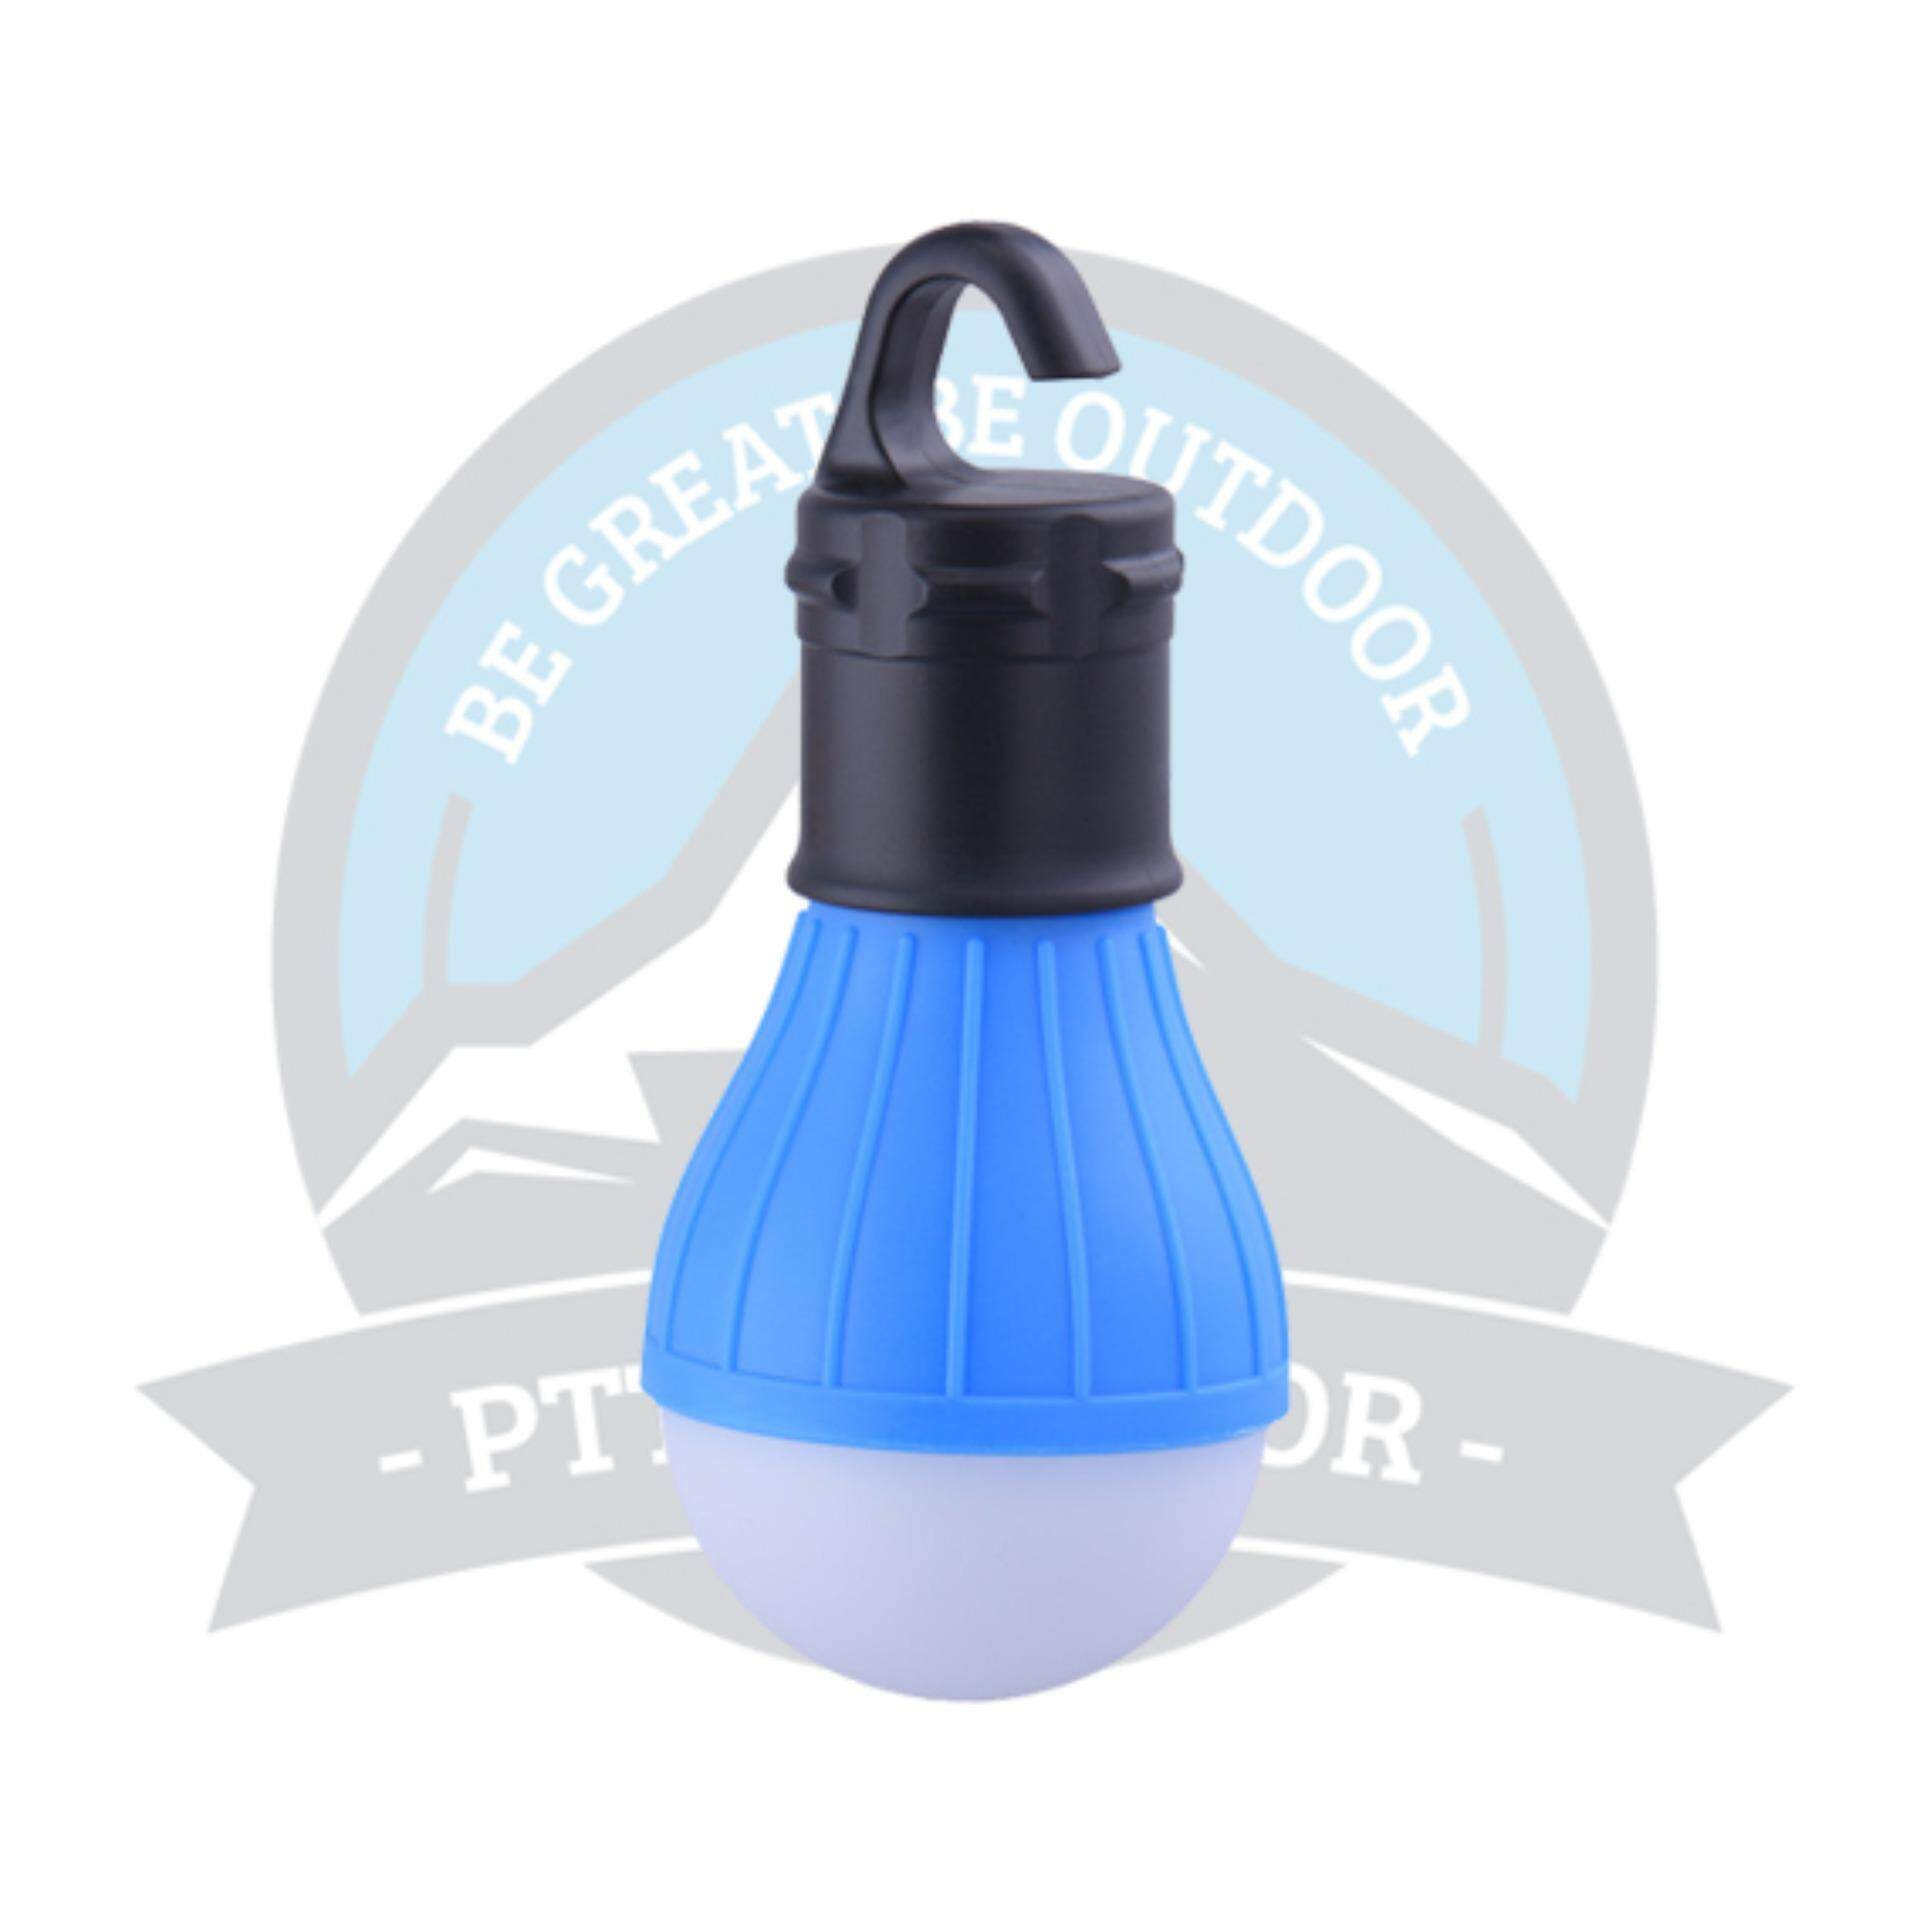 [READY STOCK] LED Tent Light Hanging Lantern Handy Warm Lamp For Hiking, Camping Or Outdoor Activities - BLUE